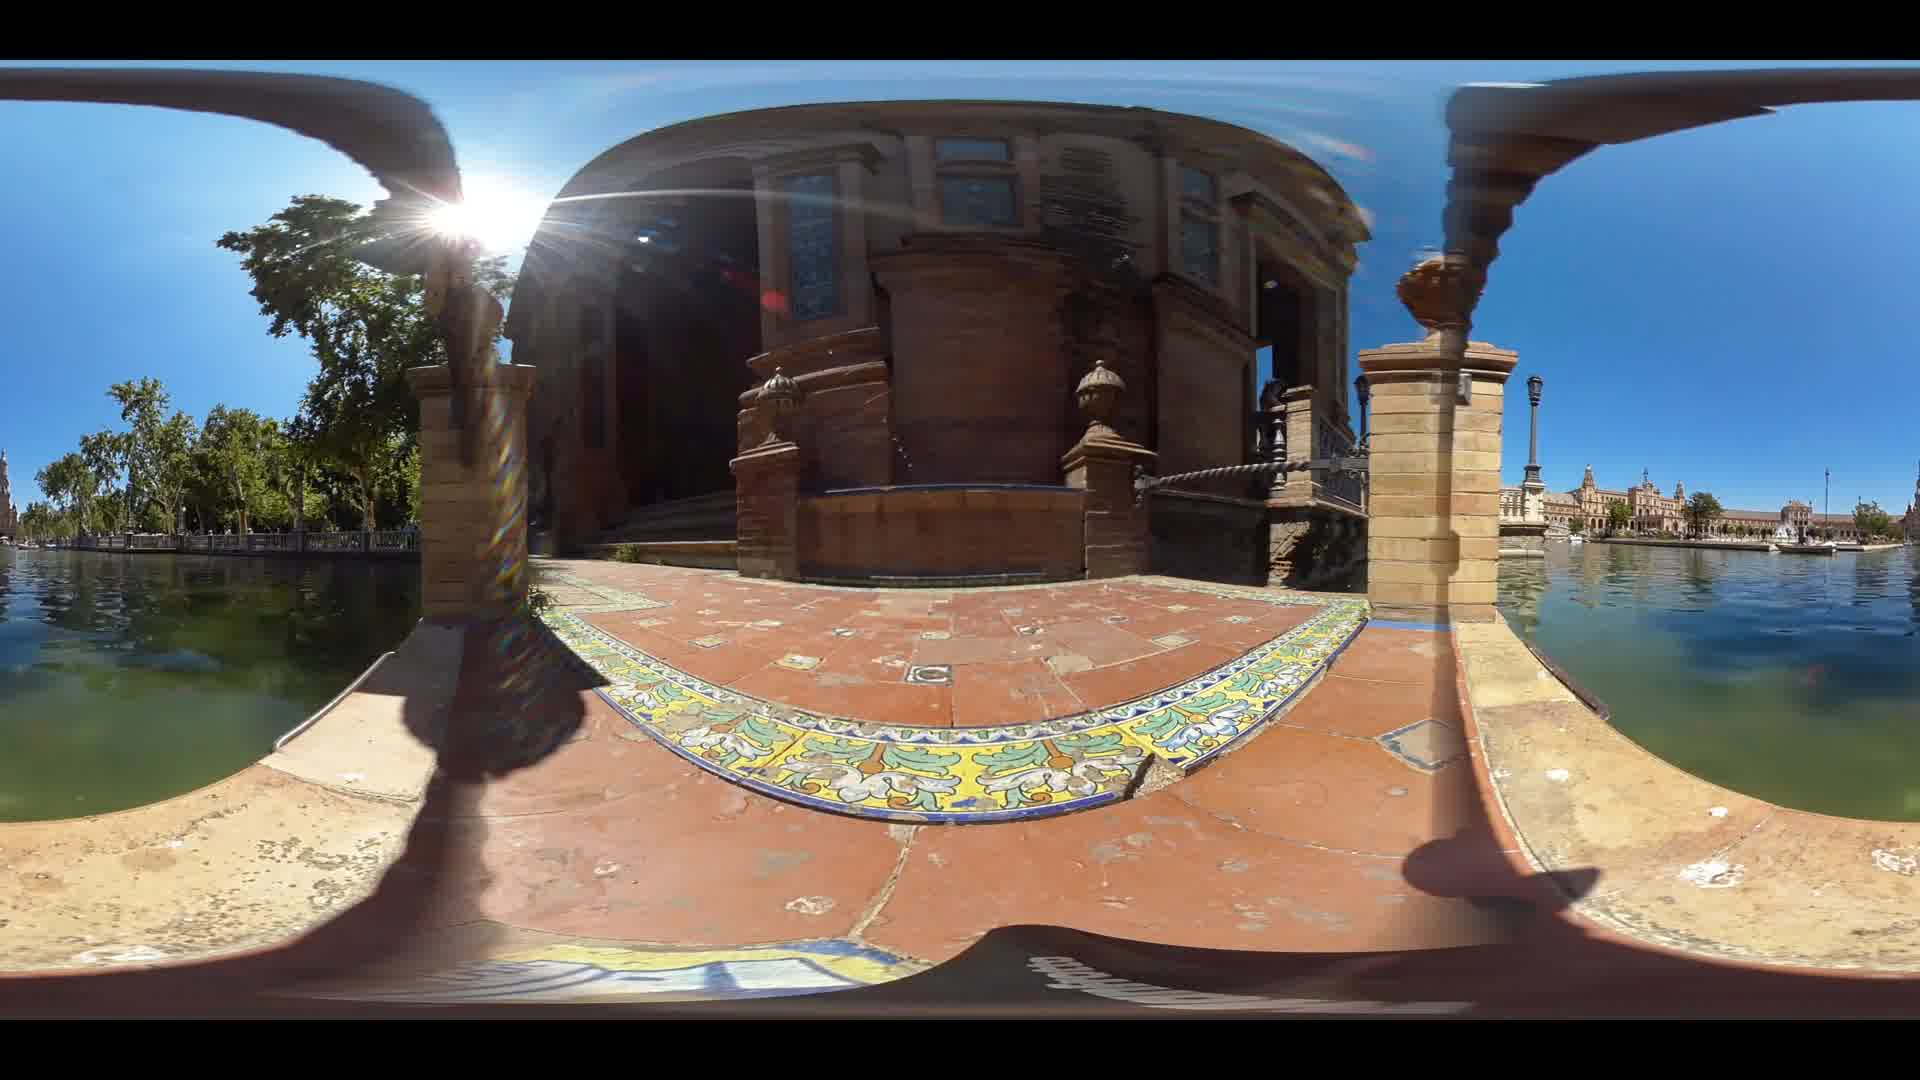 Virtual Reality 360 view from canal next to the Plaza de Espana in Seville Spain